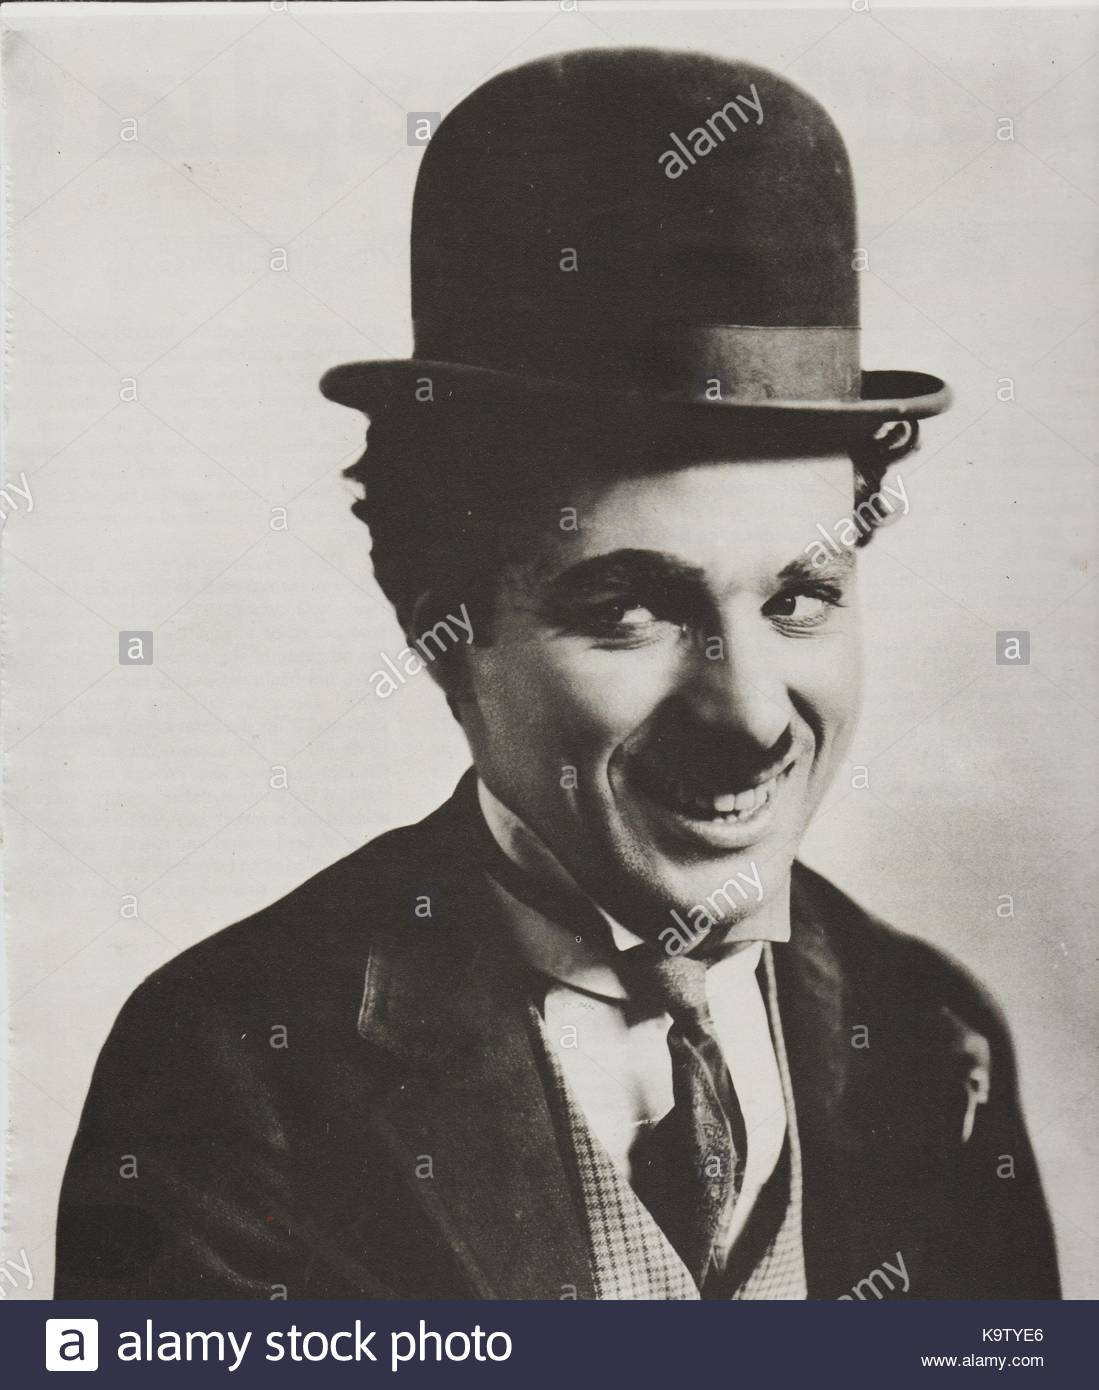 the life and comical career of charlie chaplin I want to say a word about chaplin's career, to give you a fuller sense of how swiftly he became an icon and how significant his example is for our understanding of the.